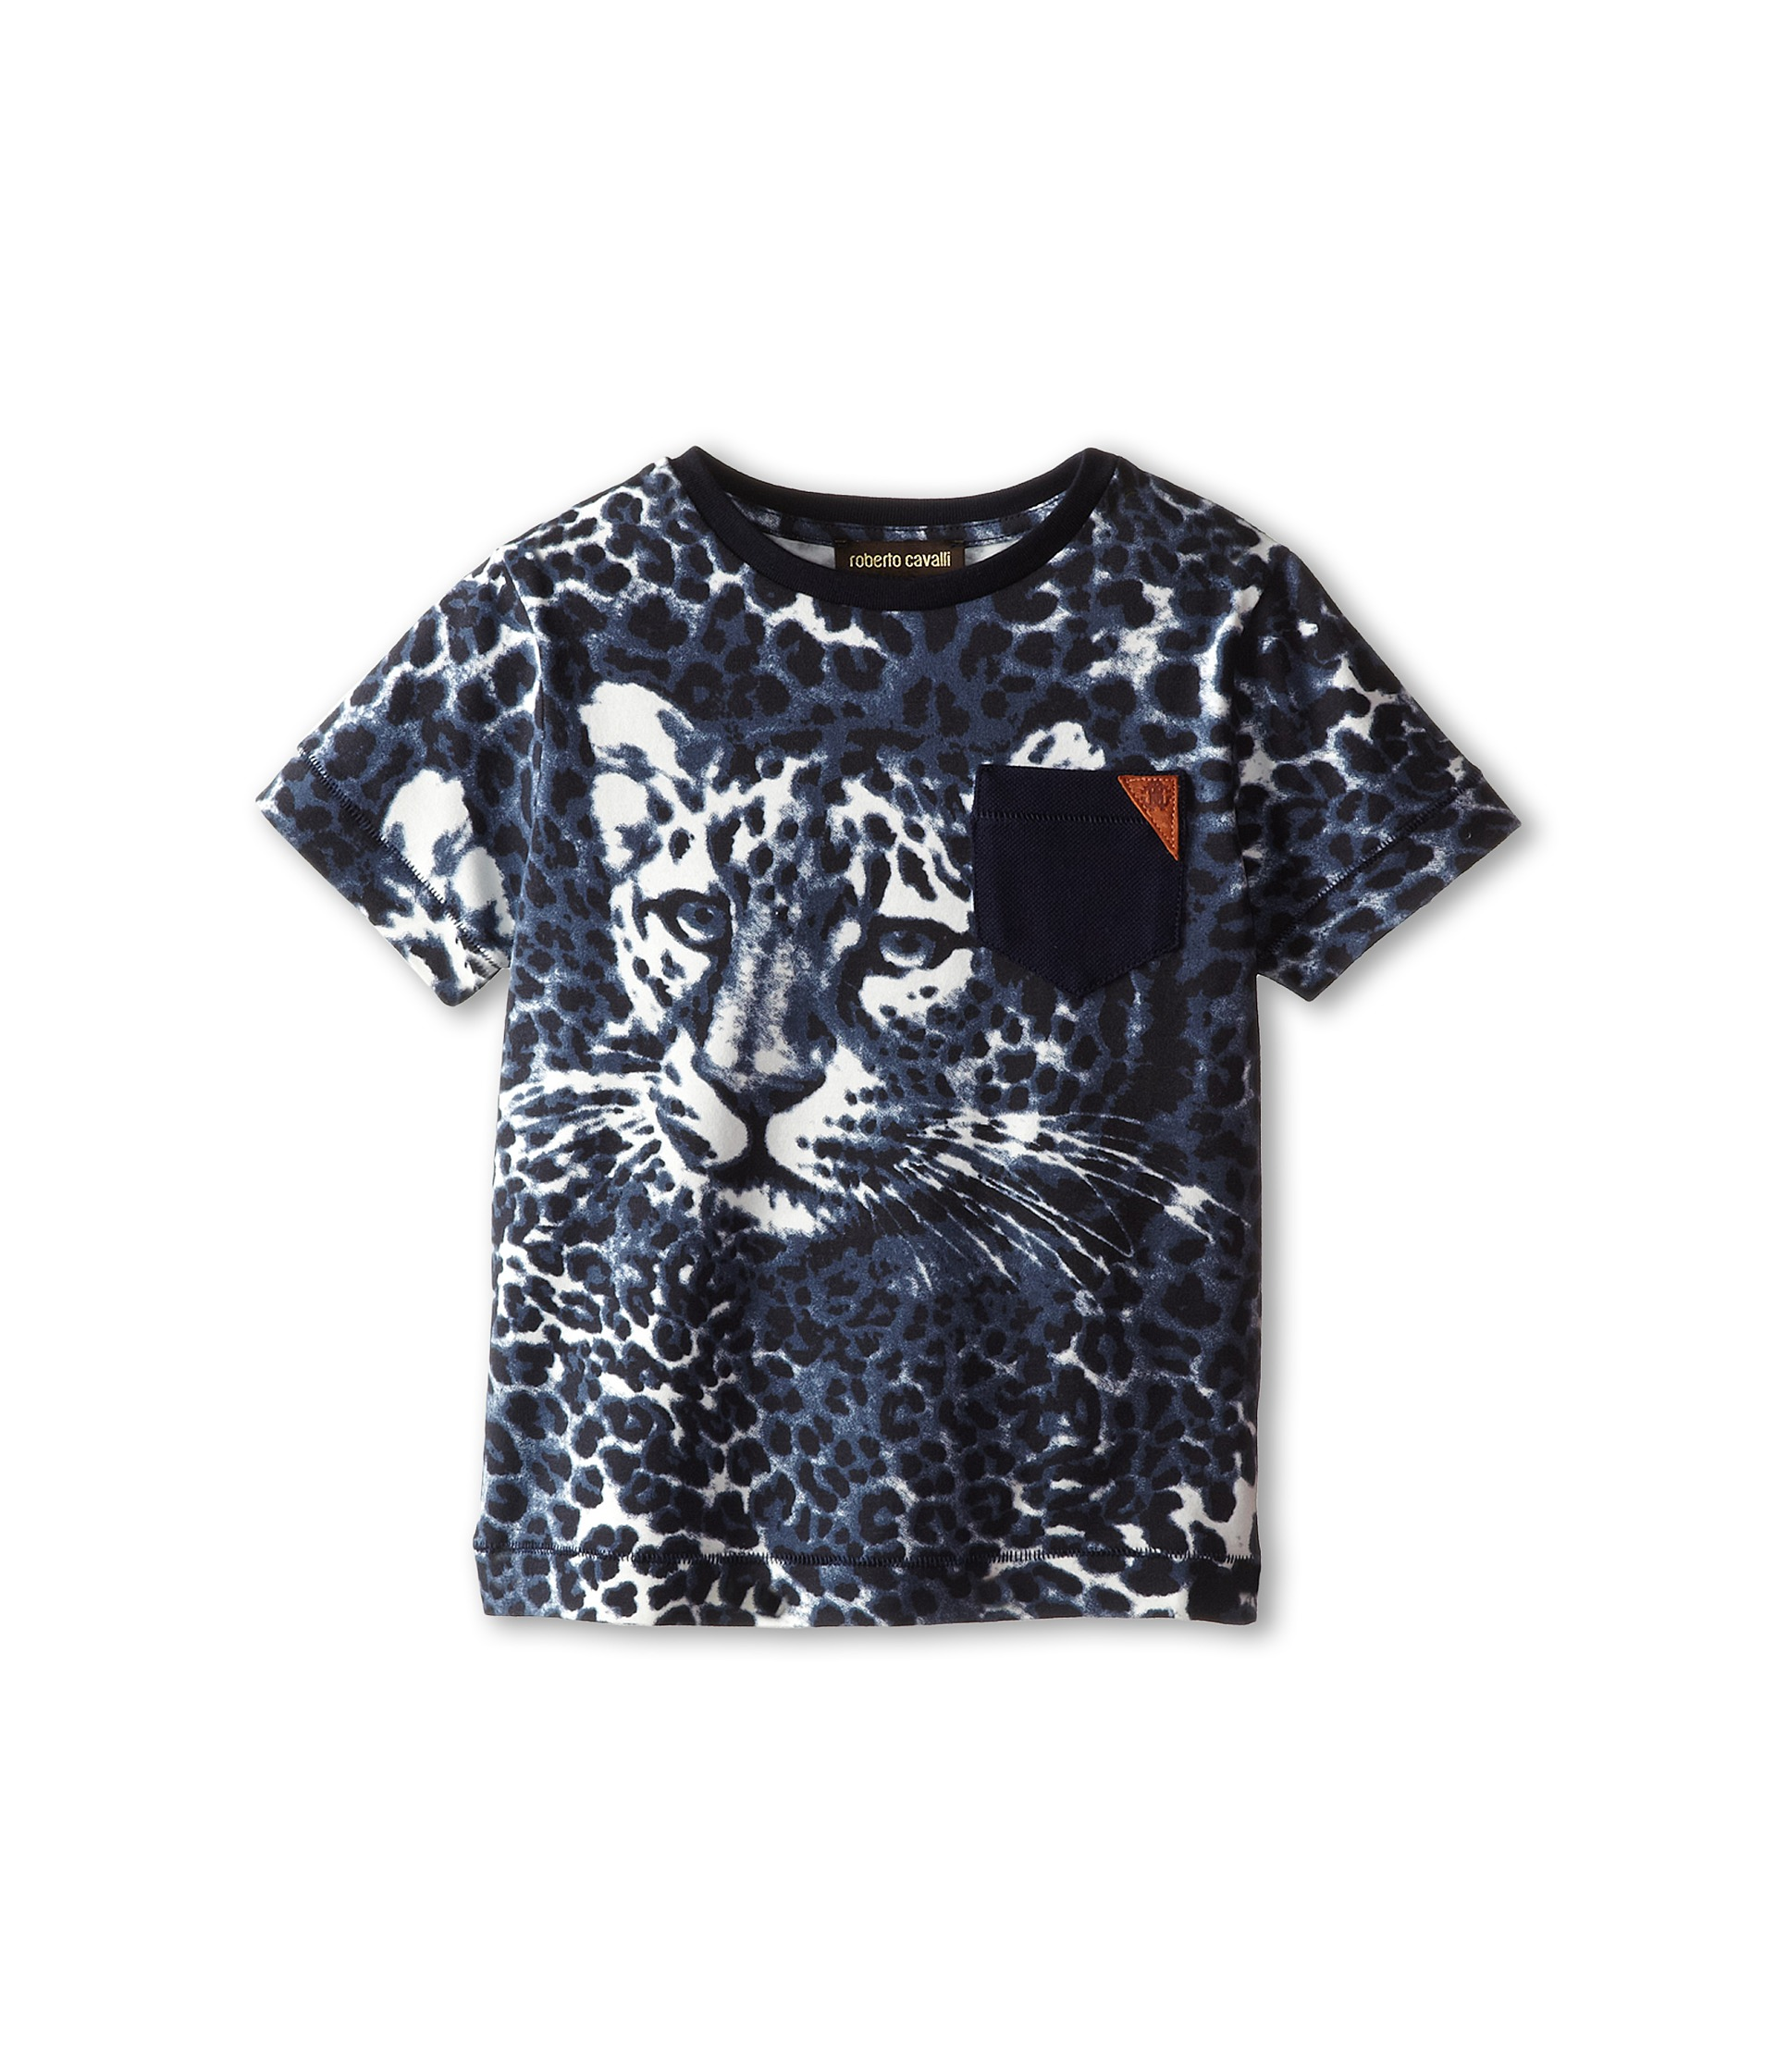 Roberto cavalli kids short sleeve allover leopard print t for Leopard print shirts for toddlers